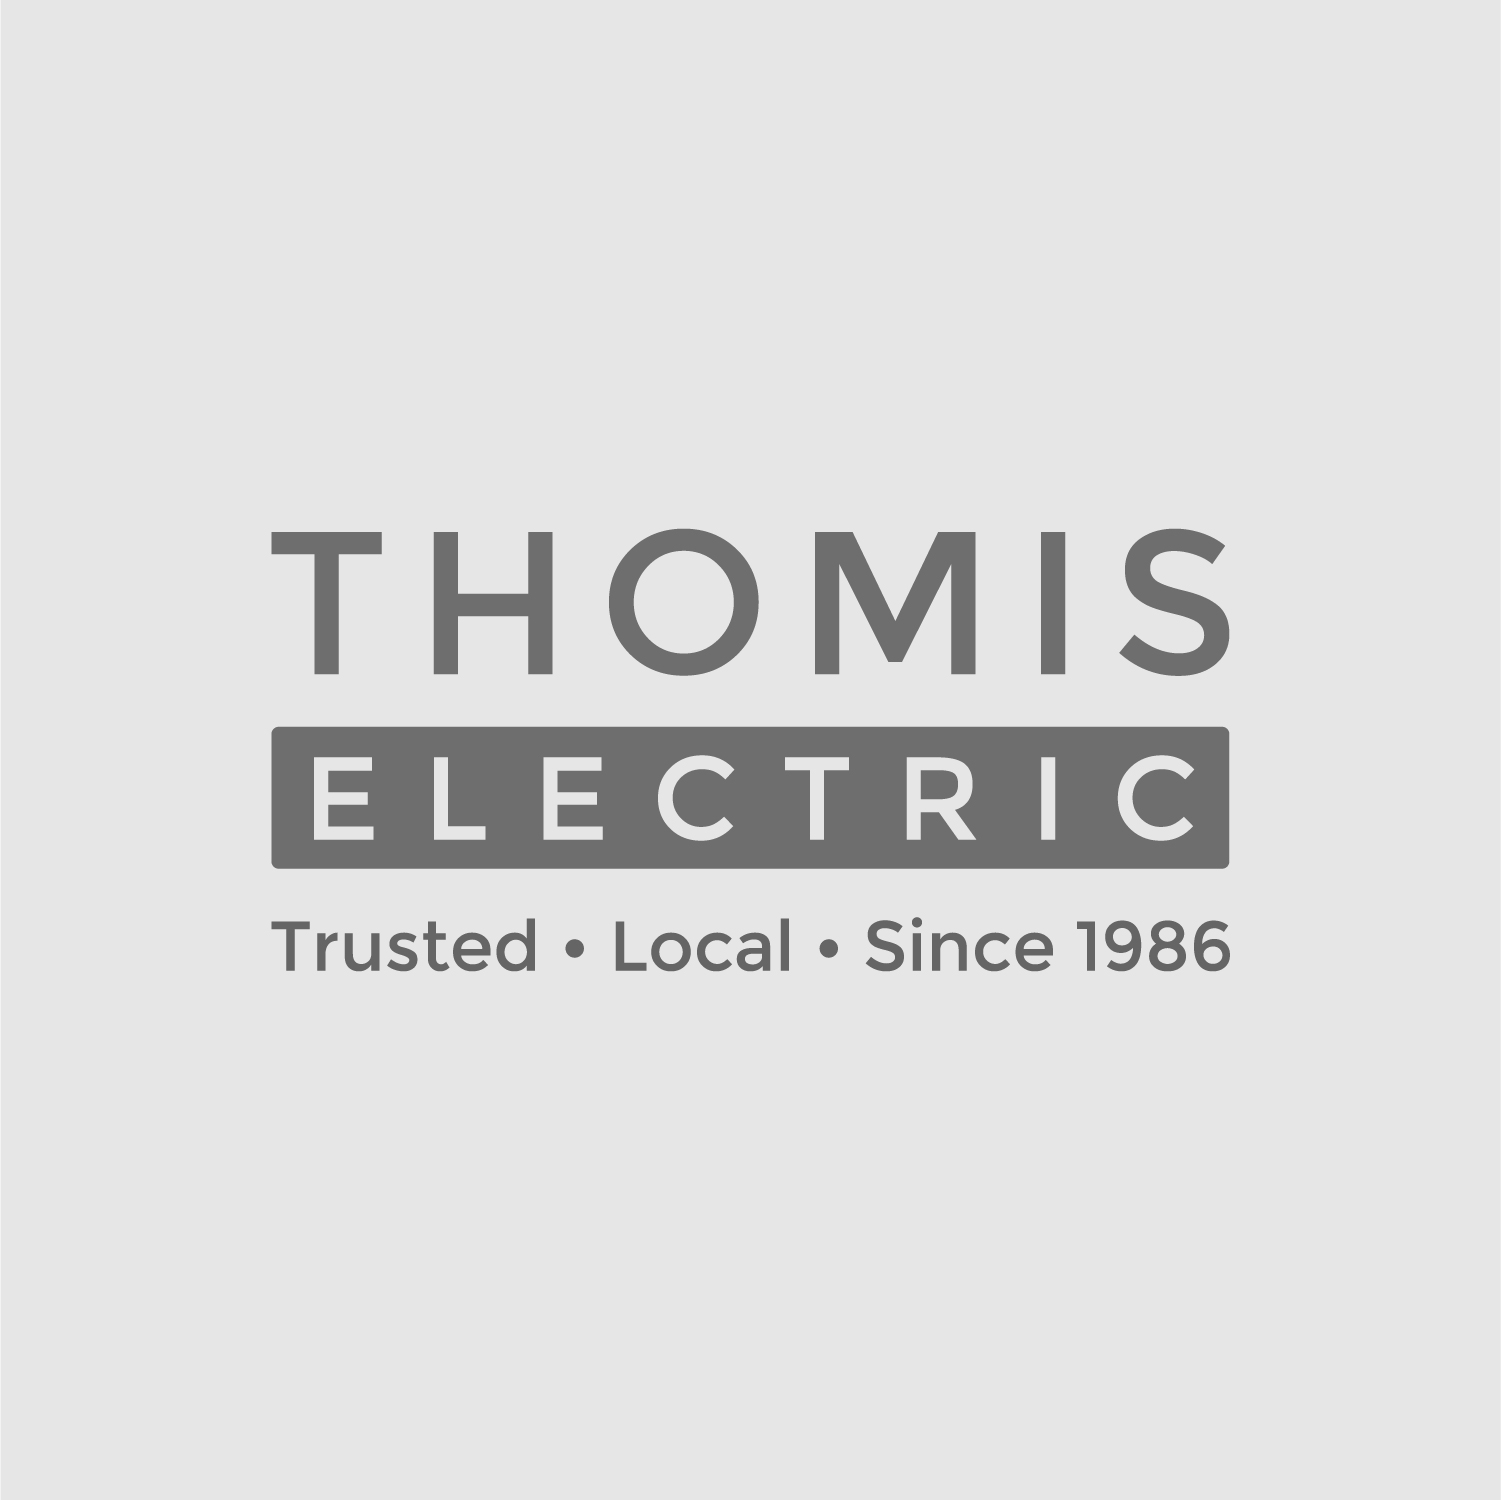 Simeon-Goa_Victoria-Canada_Graphic-Logo-Design_Thomis-Electric.jpg